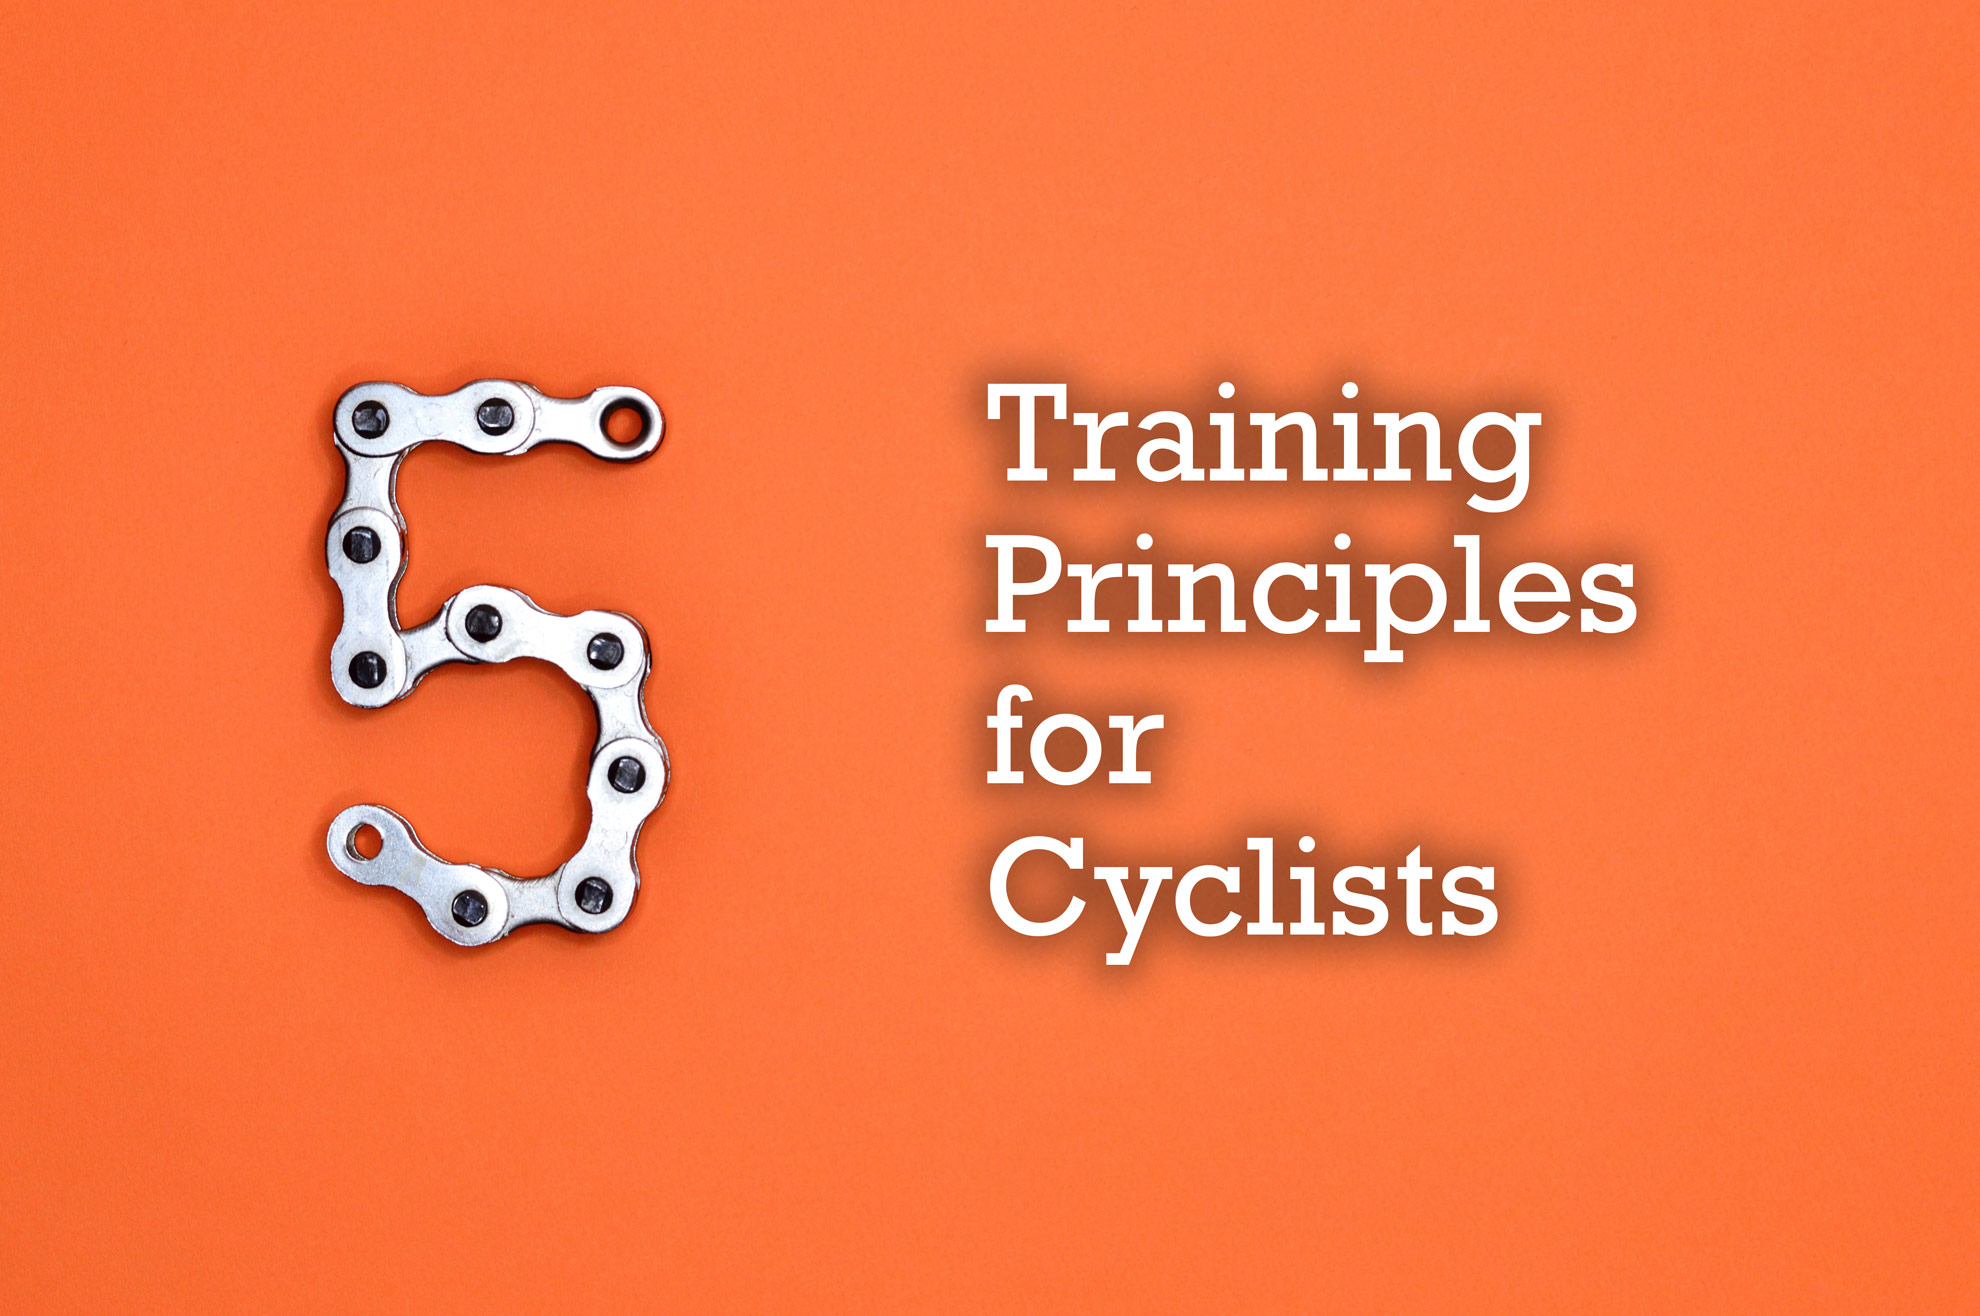 5 Training Principles for Cyclists